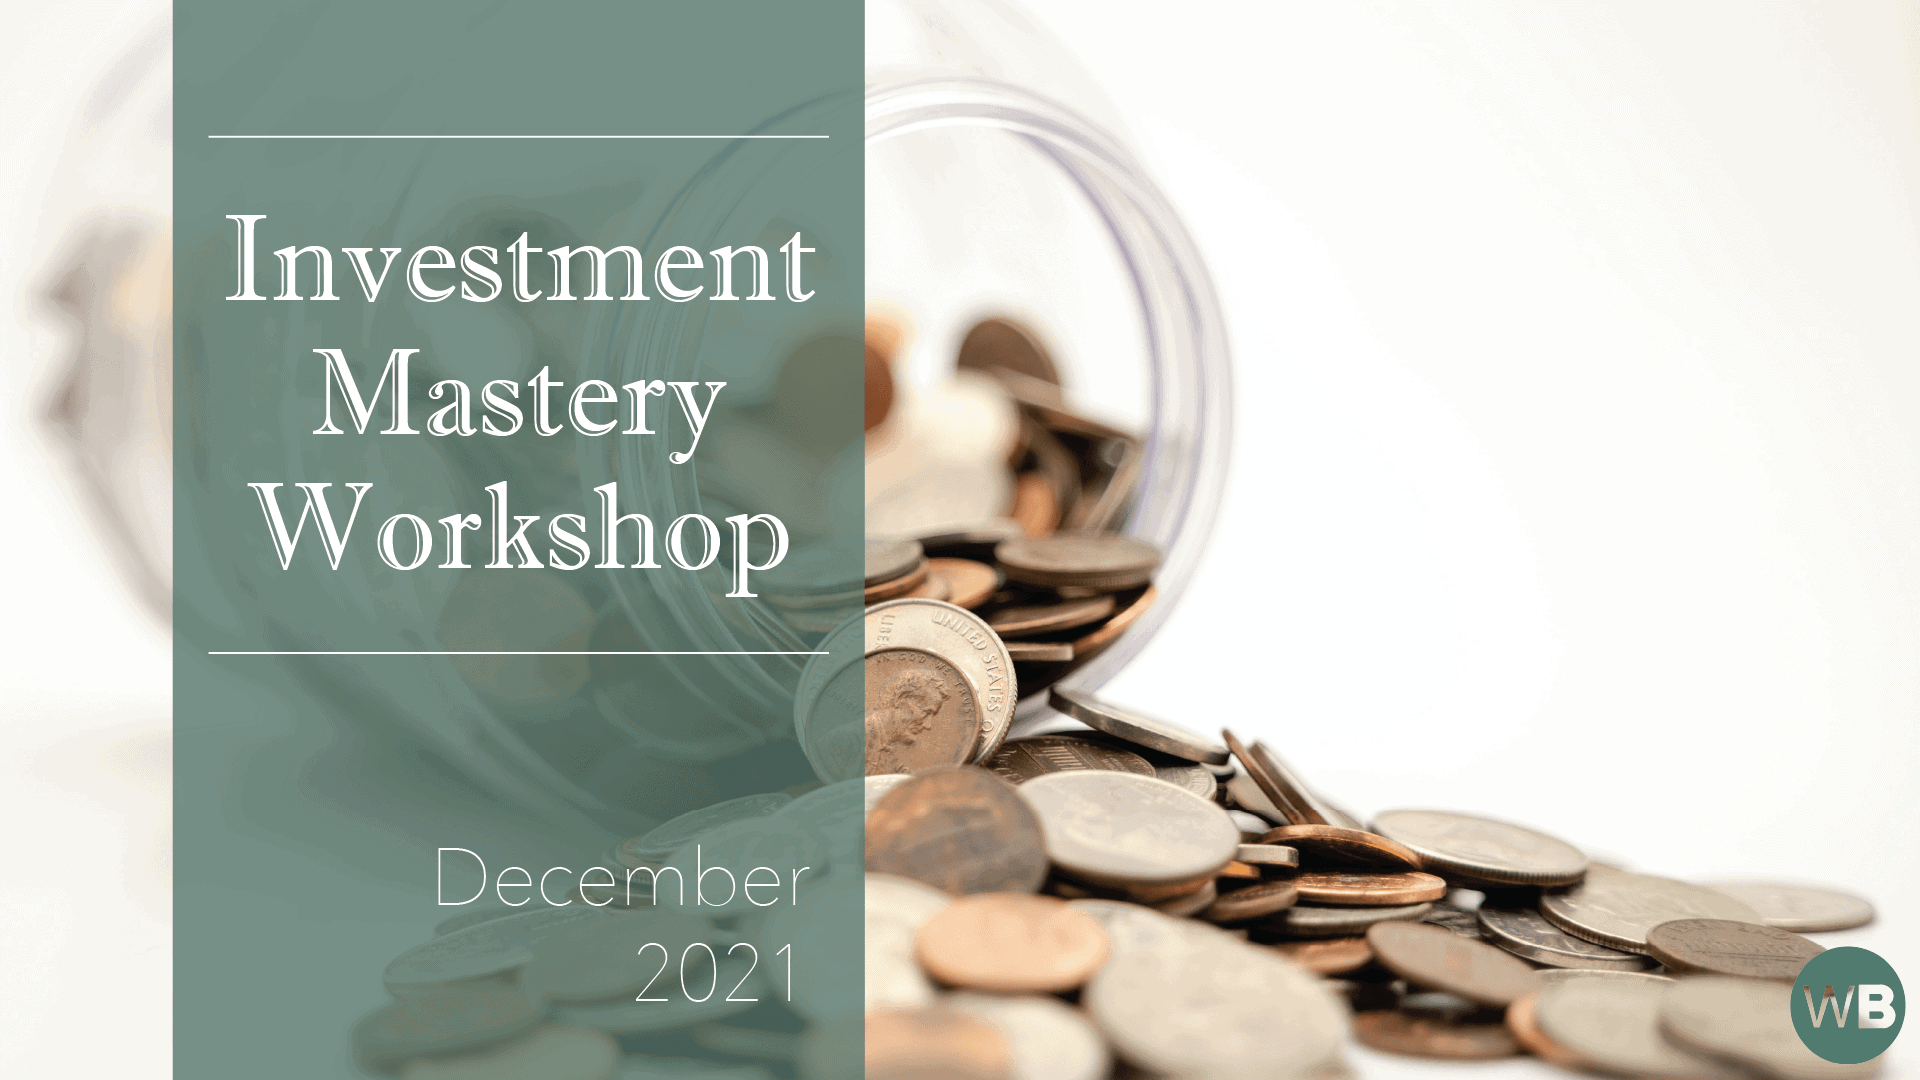 Investment Mastery Workshop